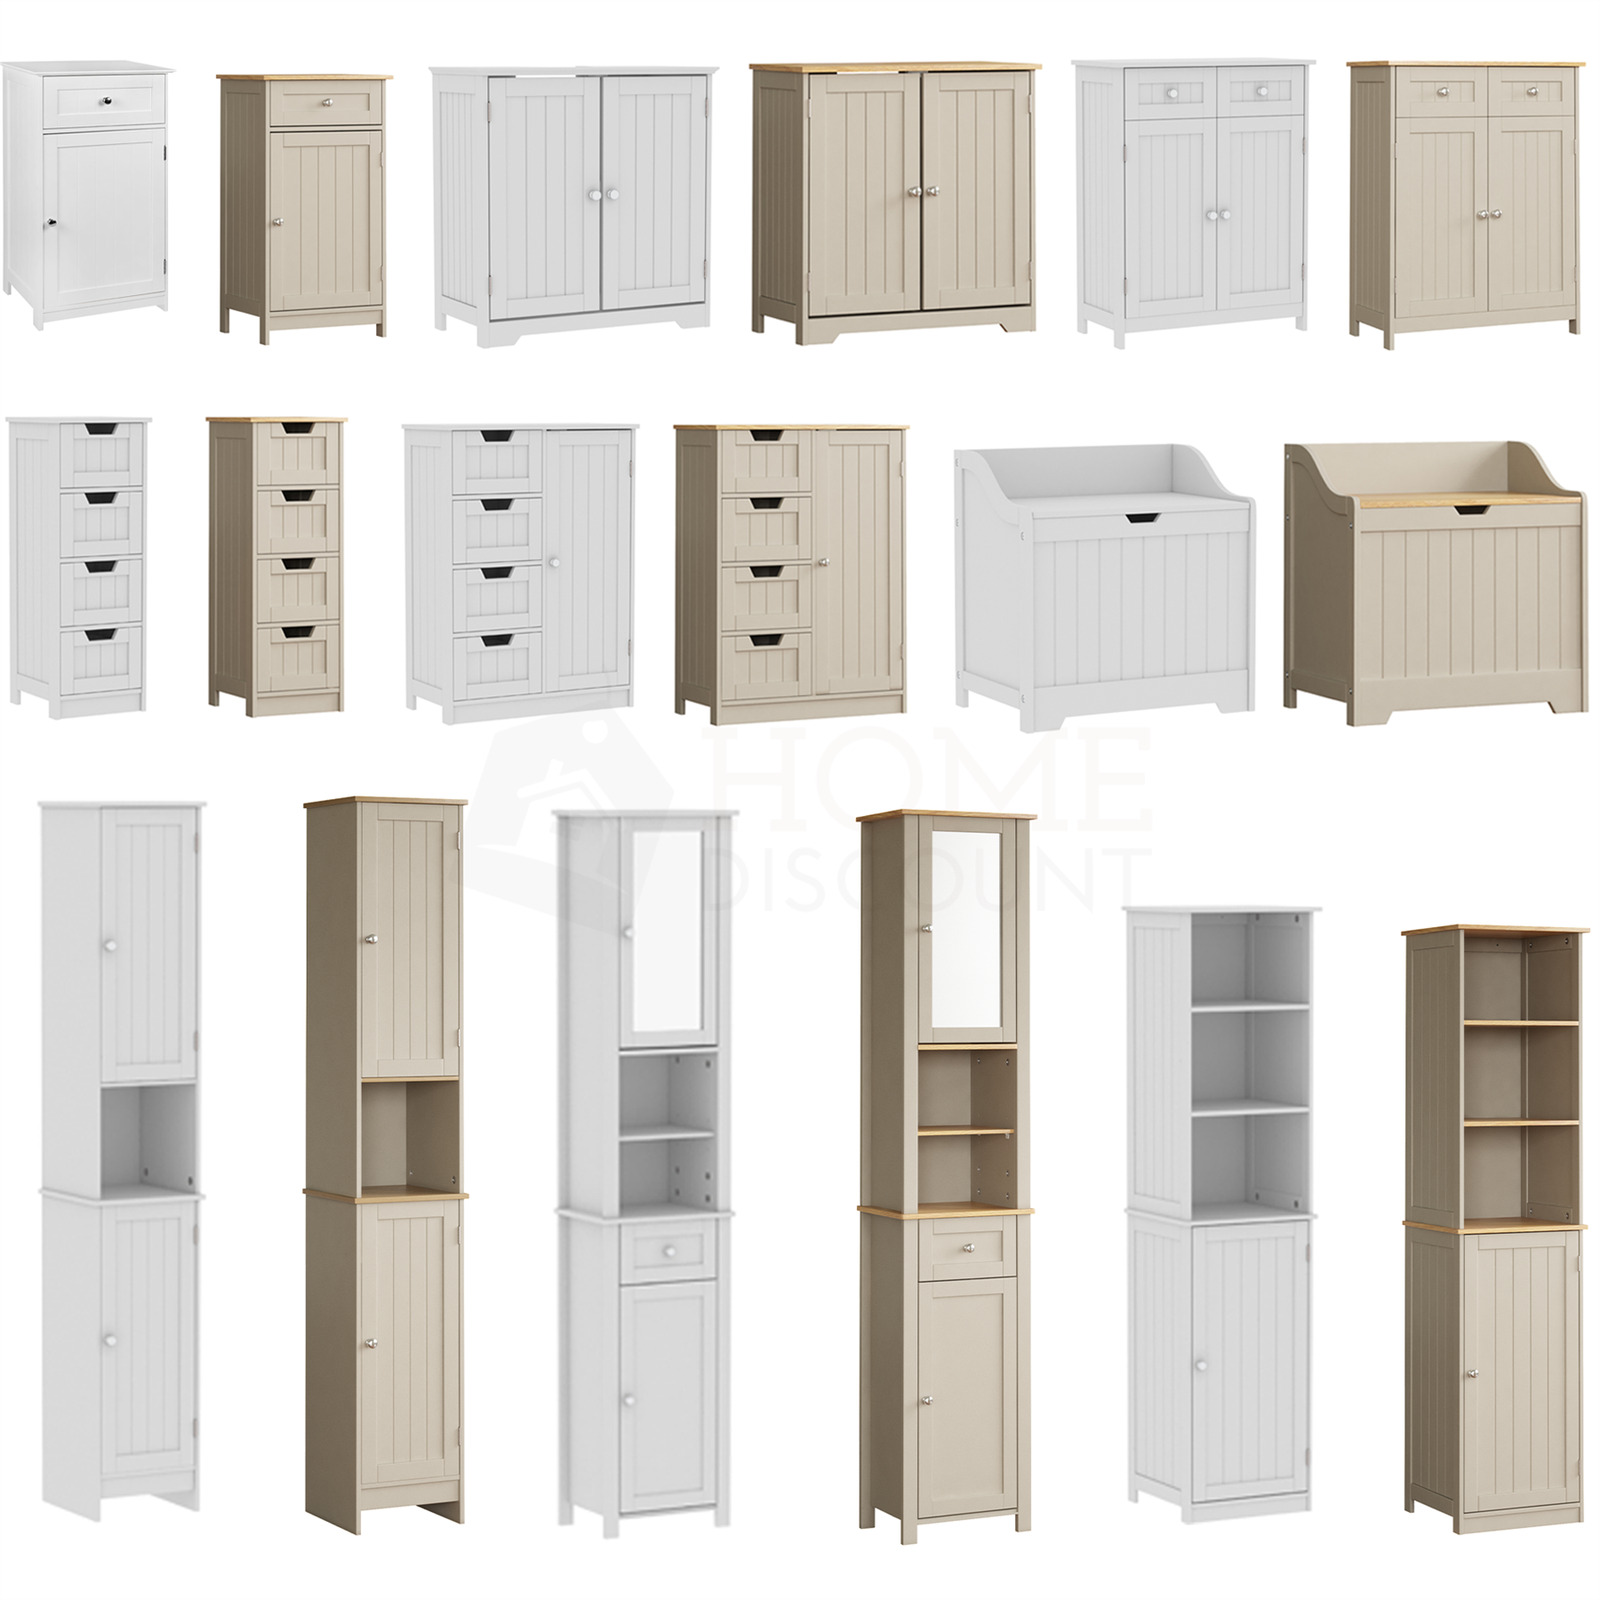 PRIANO FREESTANDING BATHROOM Cabinet Unit White Vanity Cupboard ...